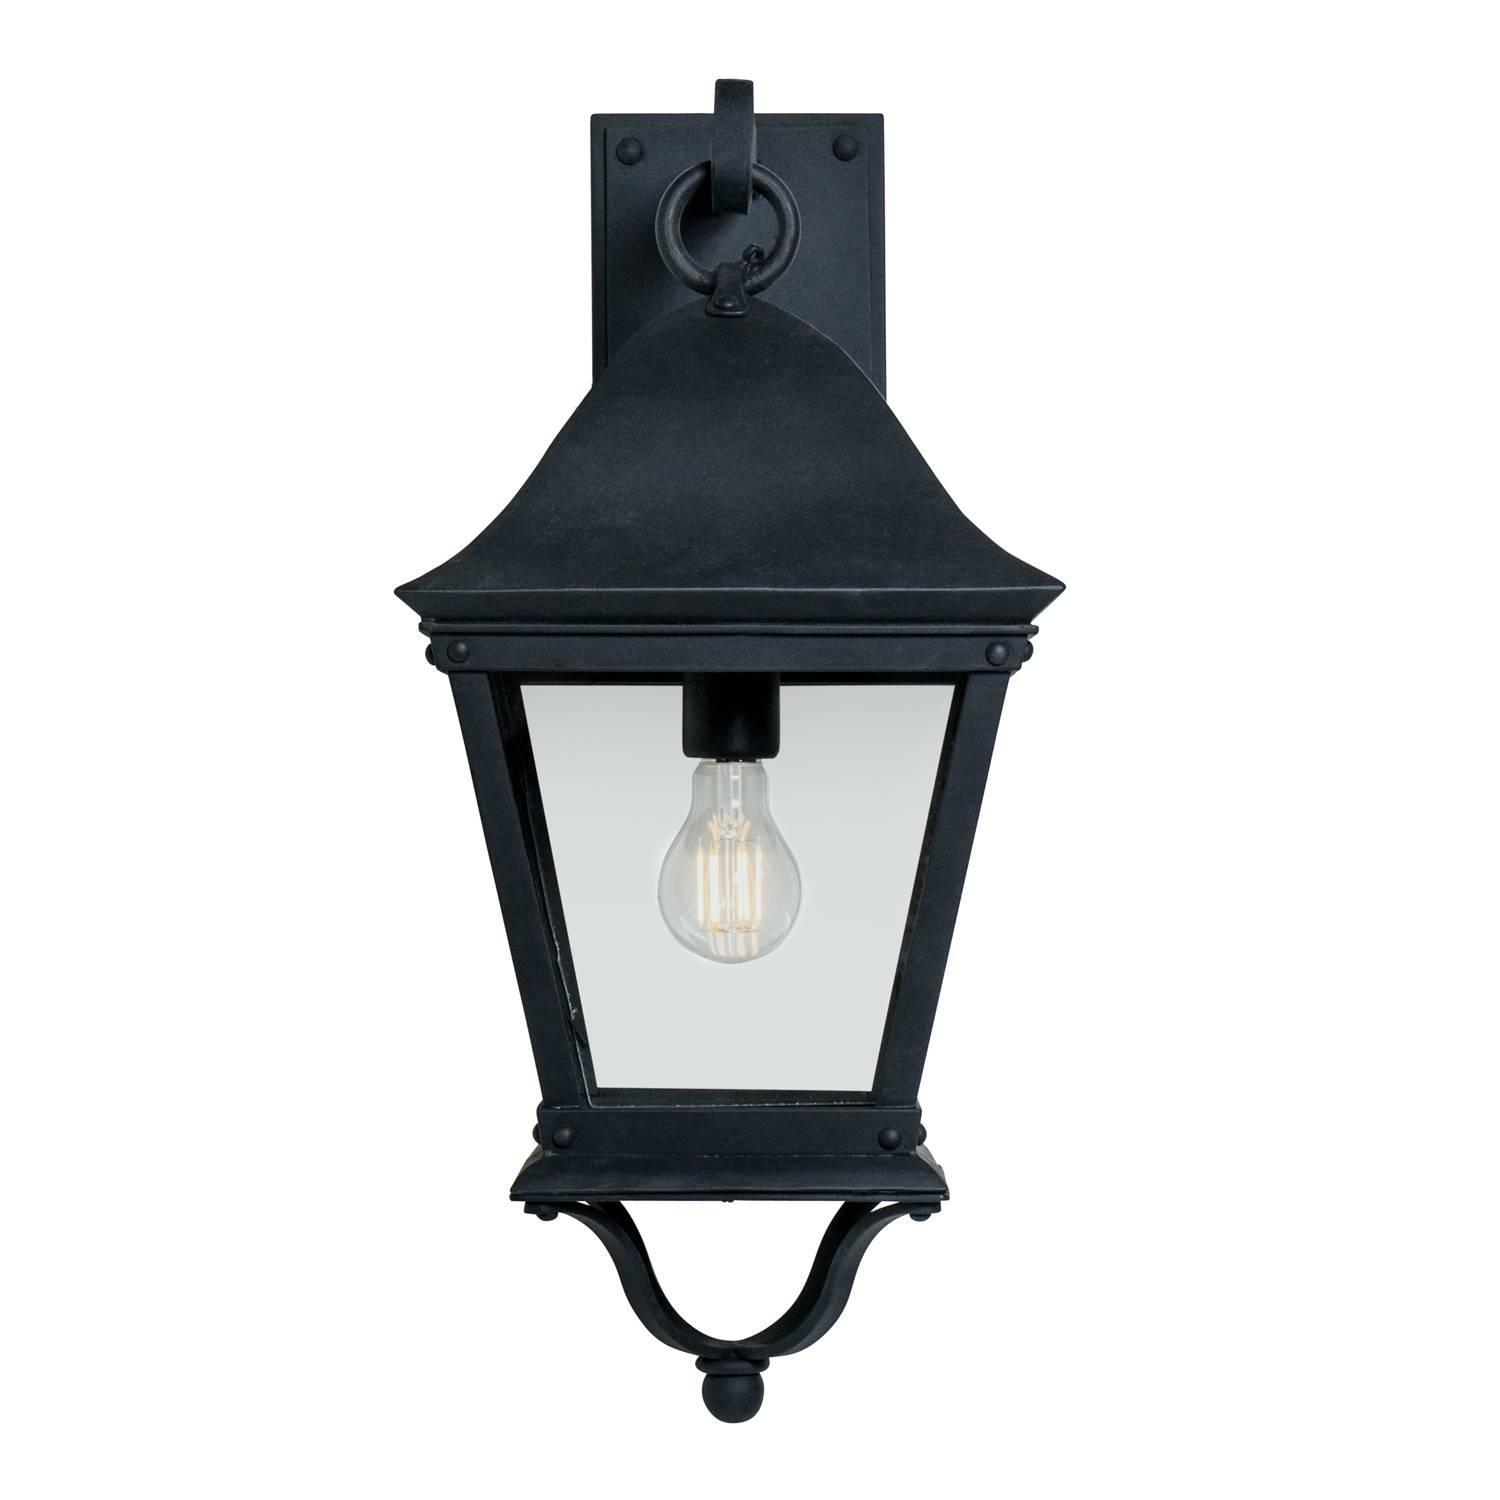 Classic spanish colonial exterior outdoor wrought iron for Outdoor colonial lighting